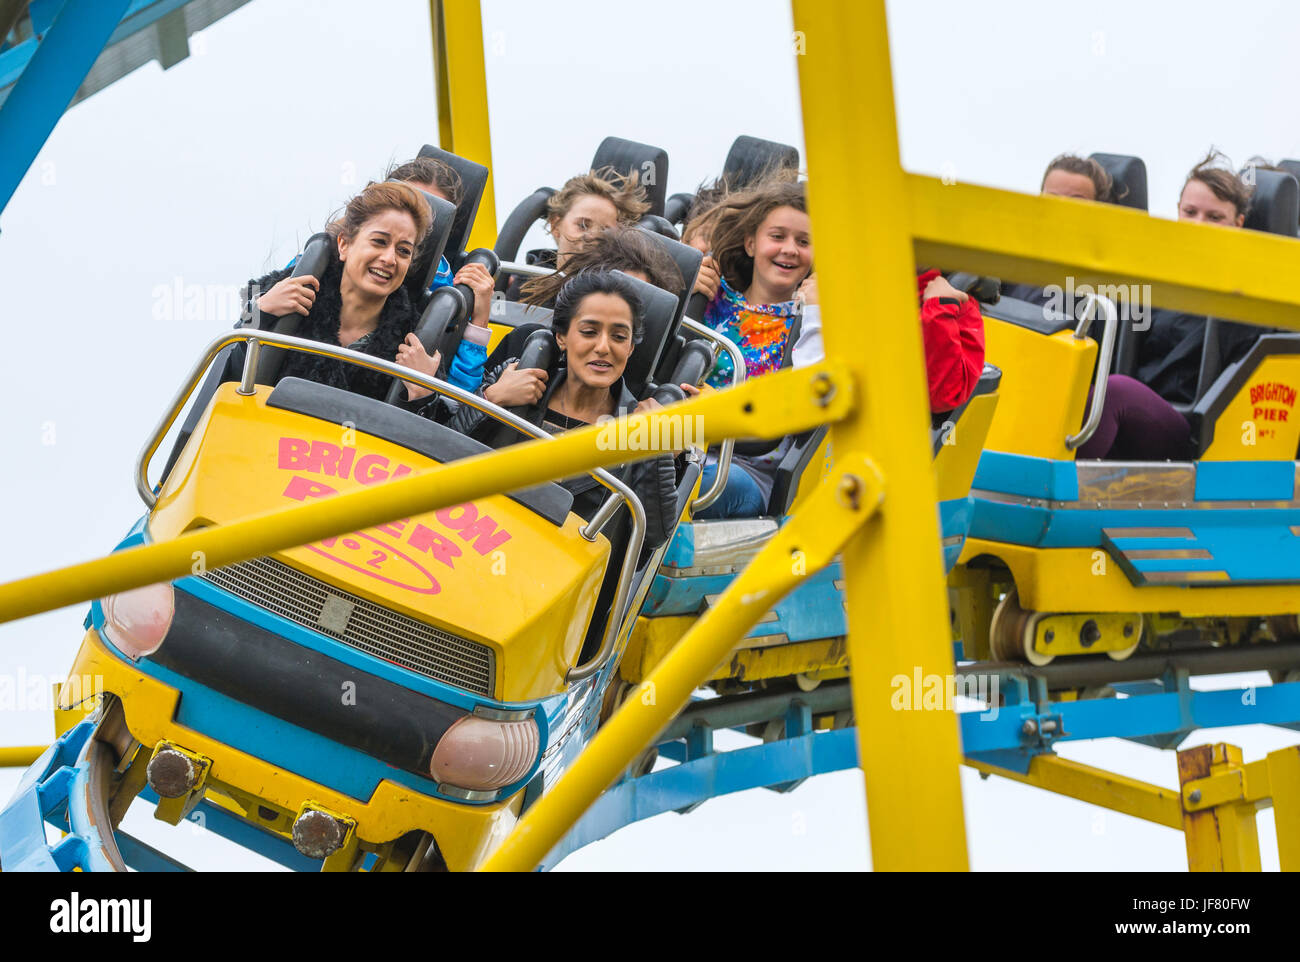 turbo-coaster-in-brighton-people-riding-on-the-turbo-coaster-roller-JF80FW.jpg